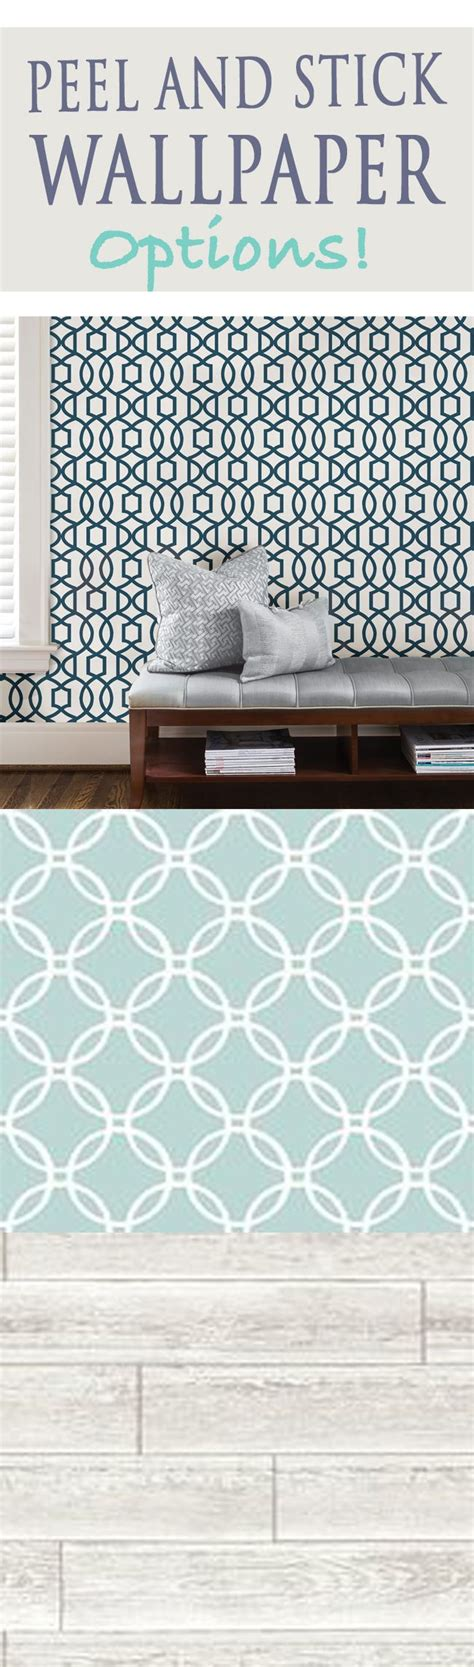 peel and stick removable wallpaper peel and stick wallpaper options removable and repositionable